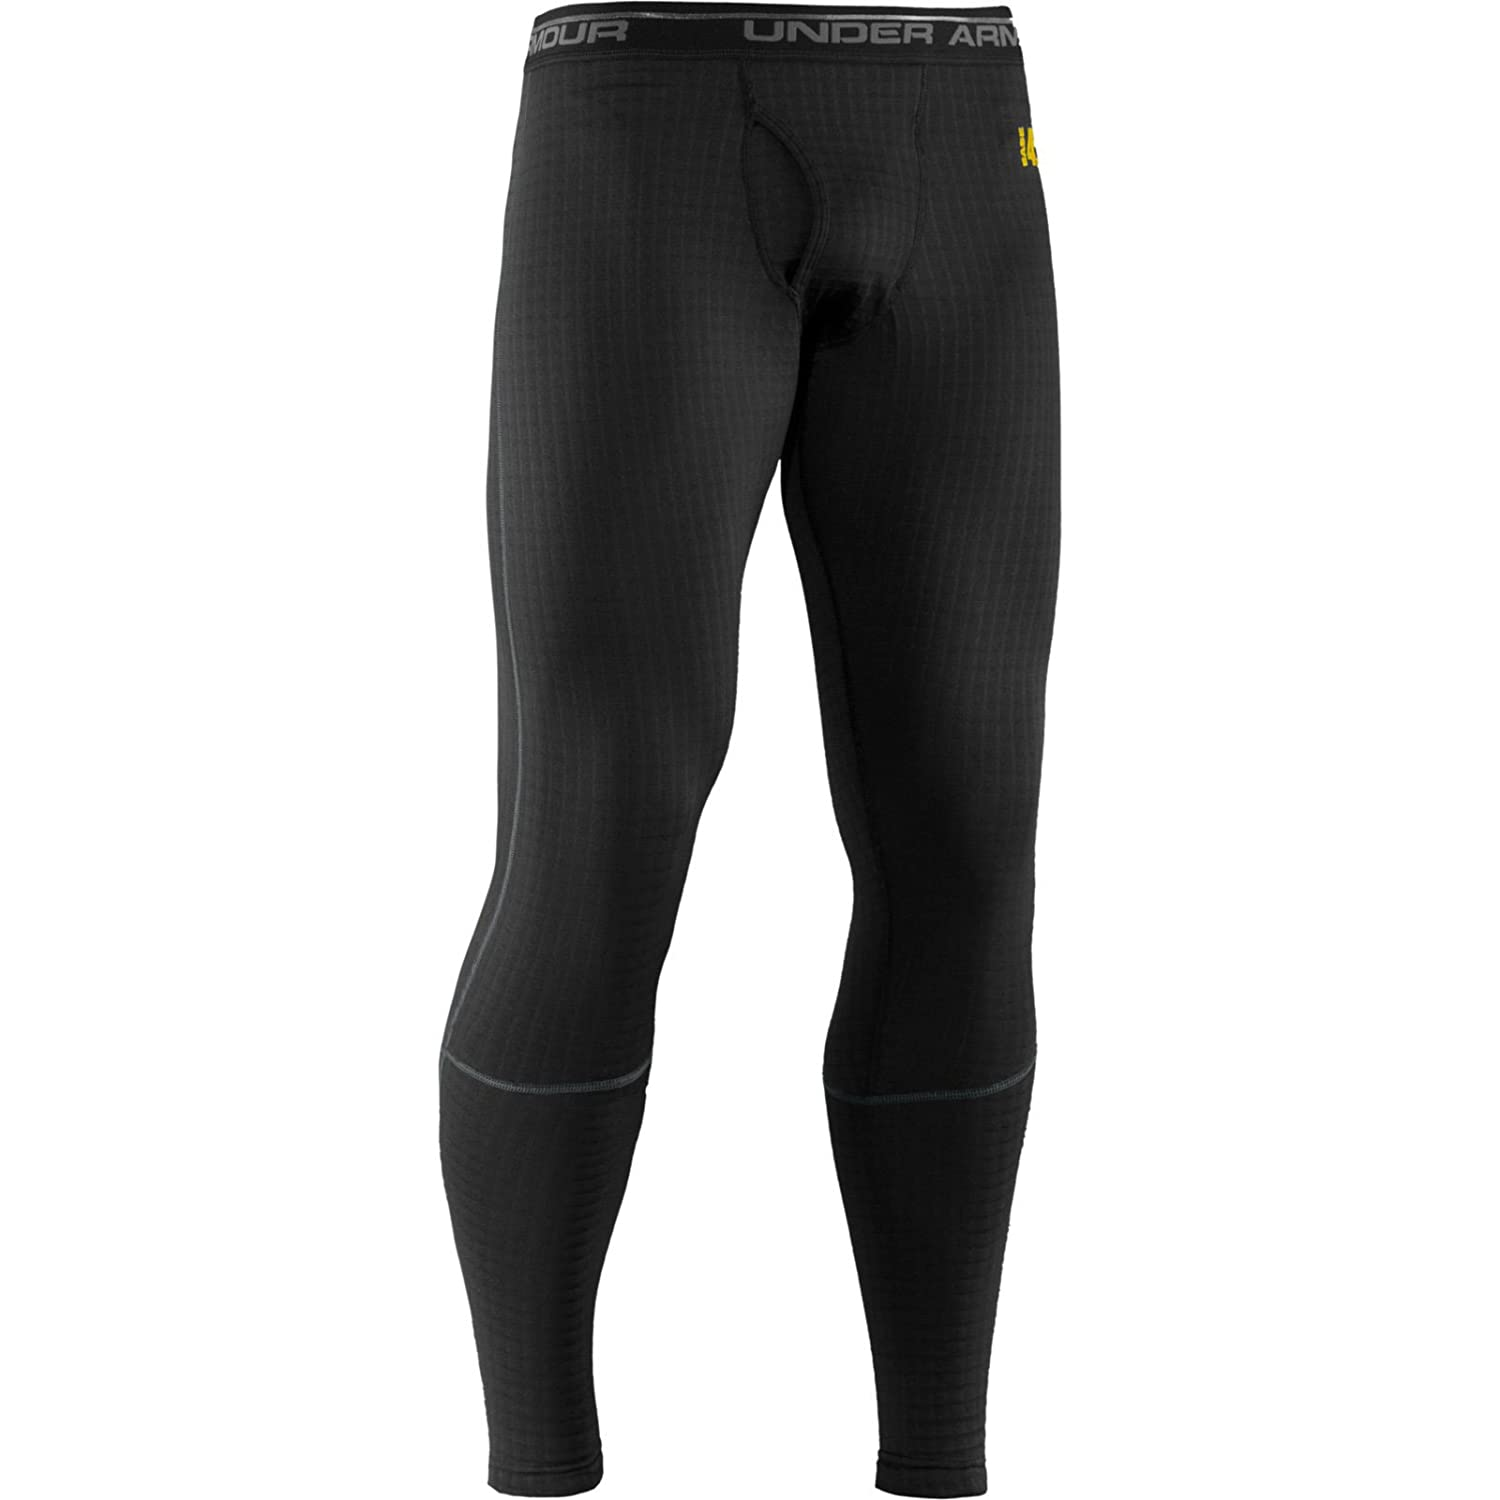 under armour 4 0. under armour ua base 4.0 legging - men\u0027s 4 0